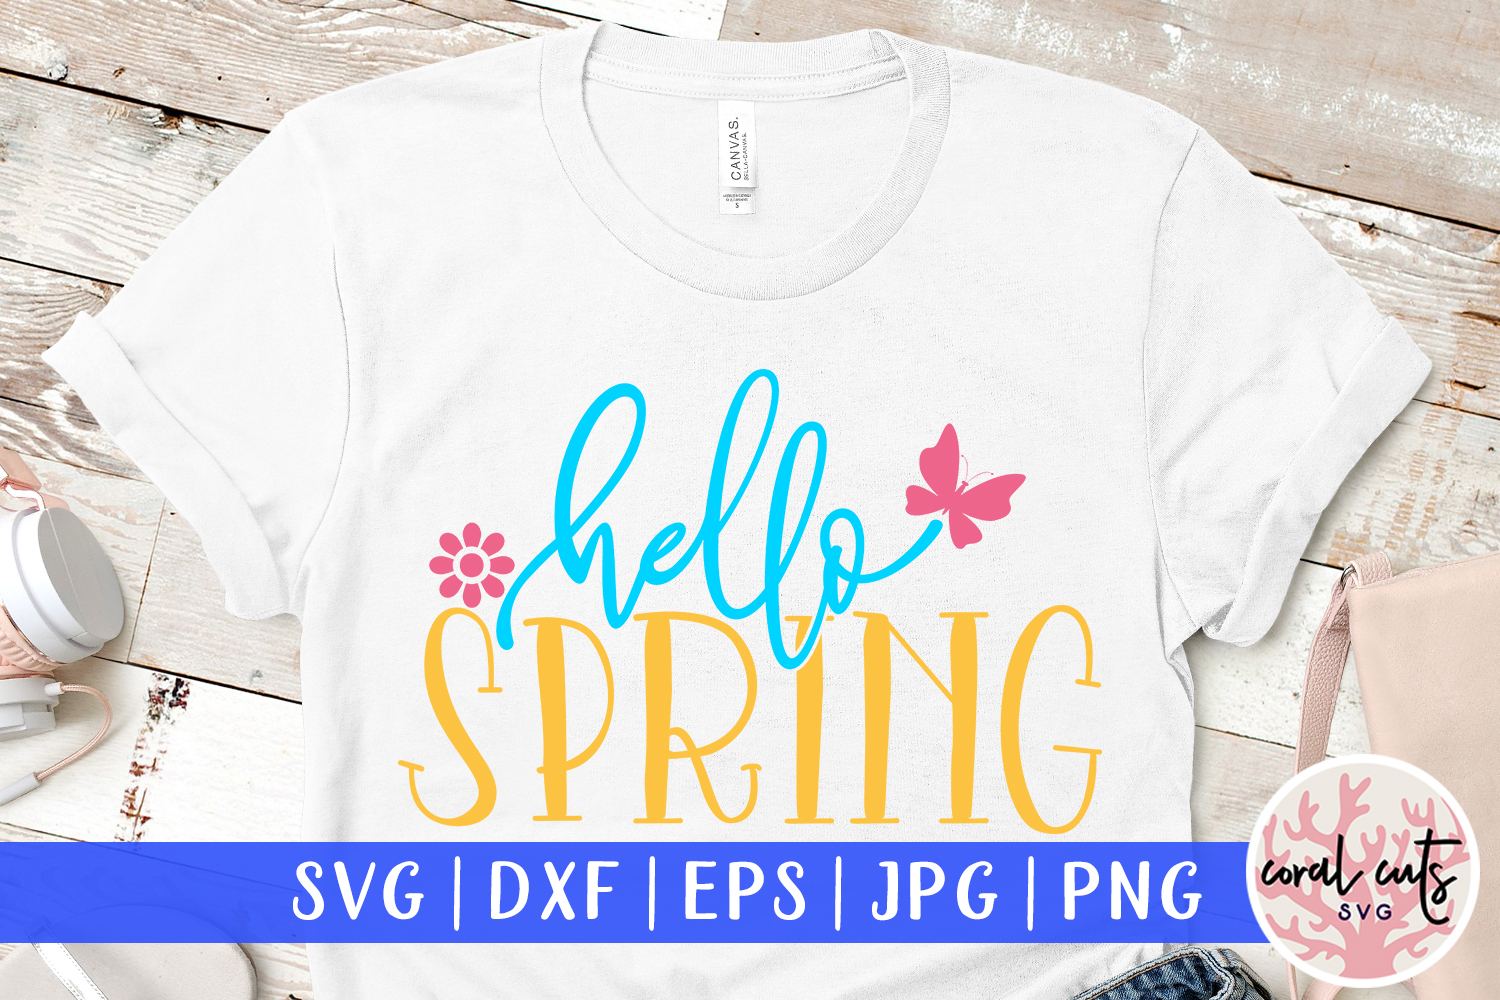 Download Free Hello Spring Cut File Graphic By Coralcutssvg Creative Fabrica for Cricut Explore, Silhouette and other cutting machines.